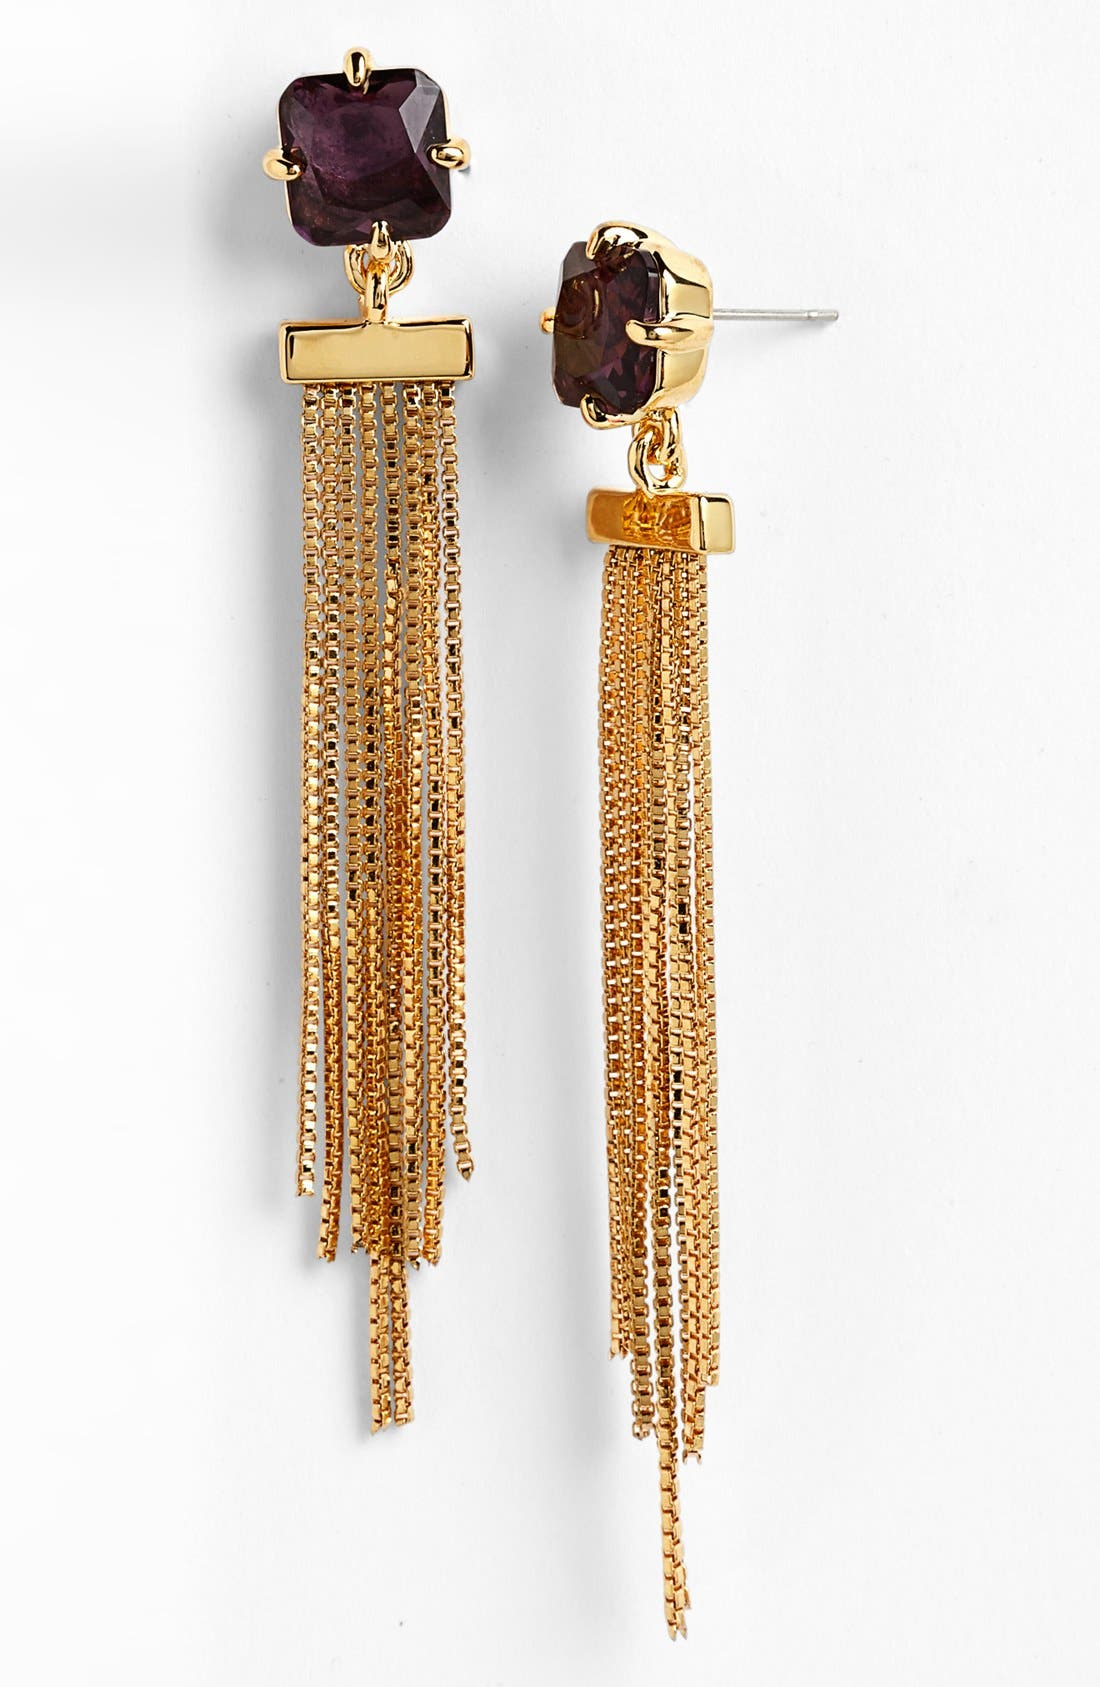 Main Image - Vince Camuto 'Jewel Purpose' Chain Fringe Linear Earrings